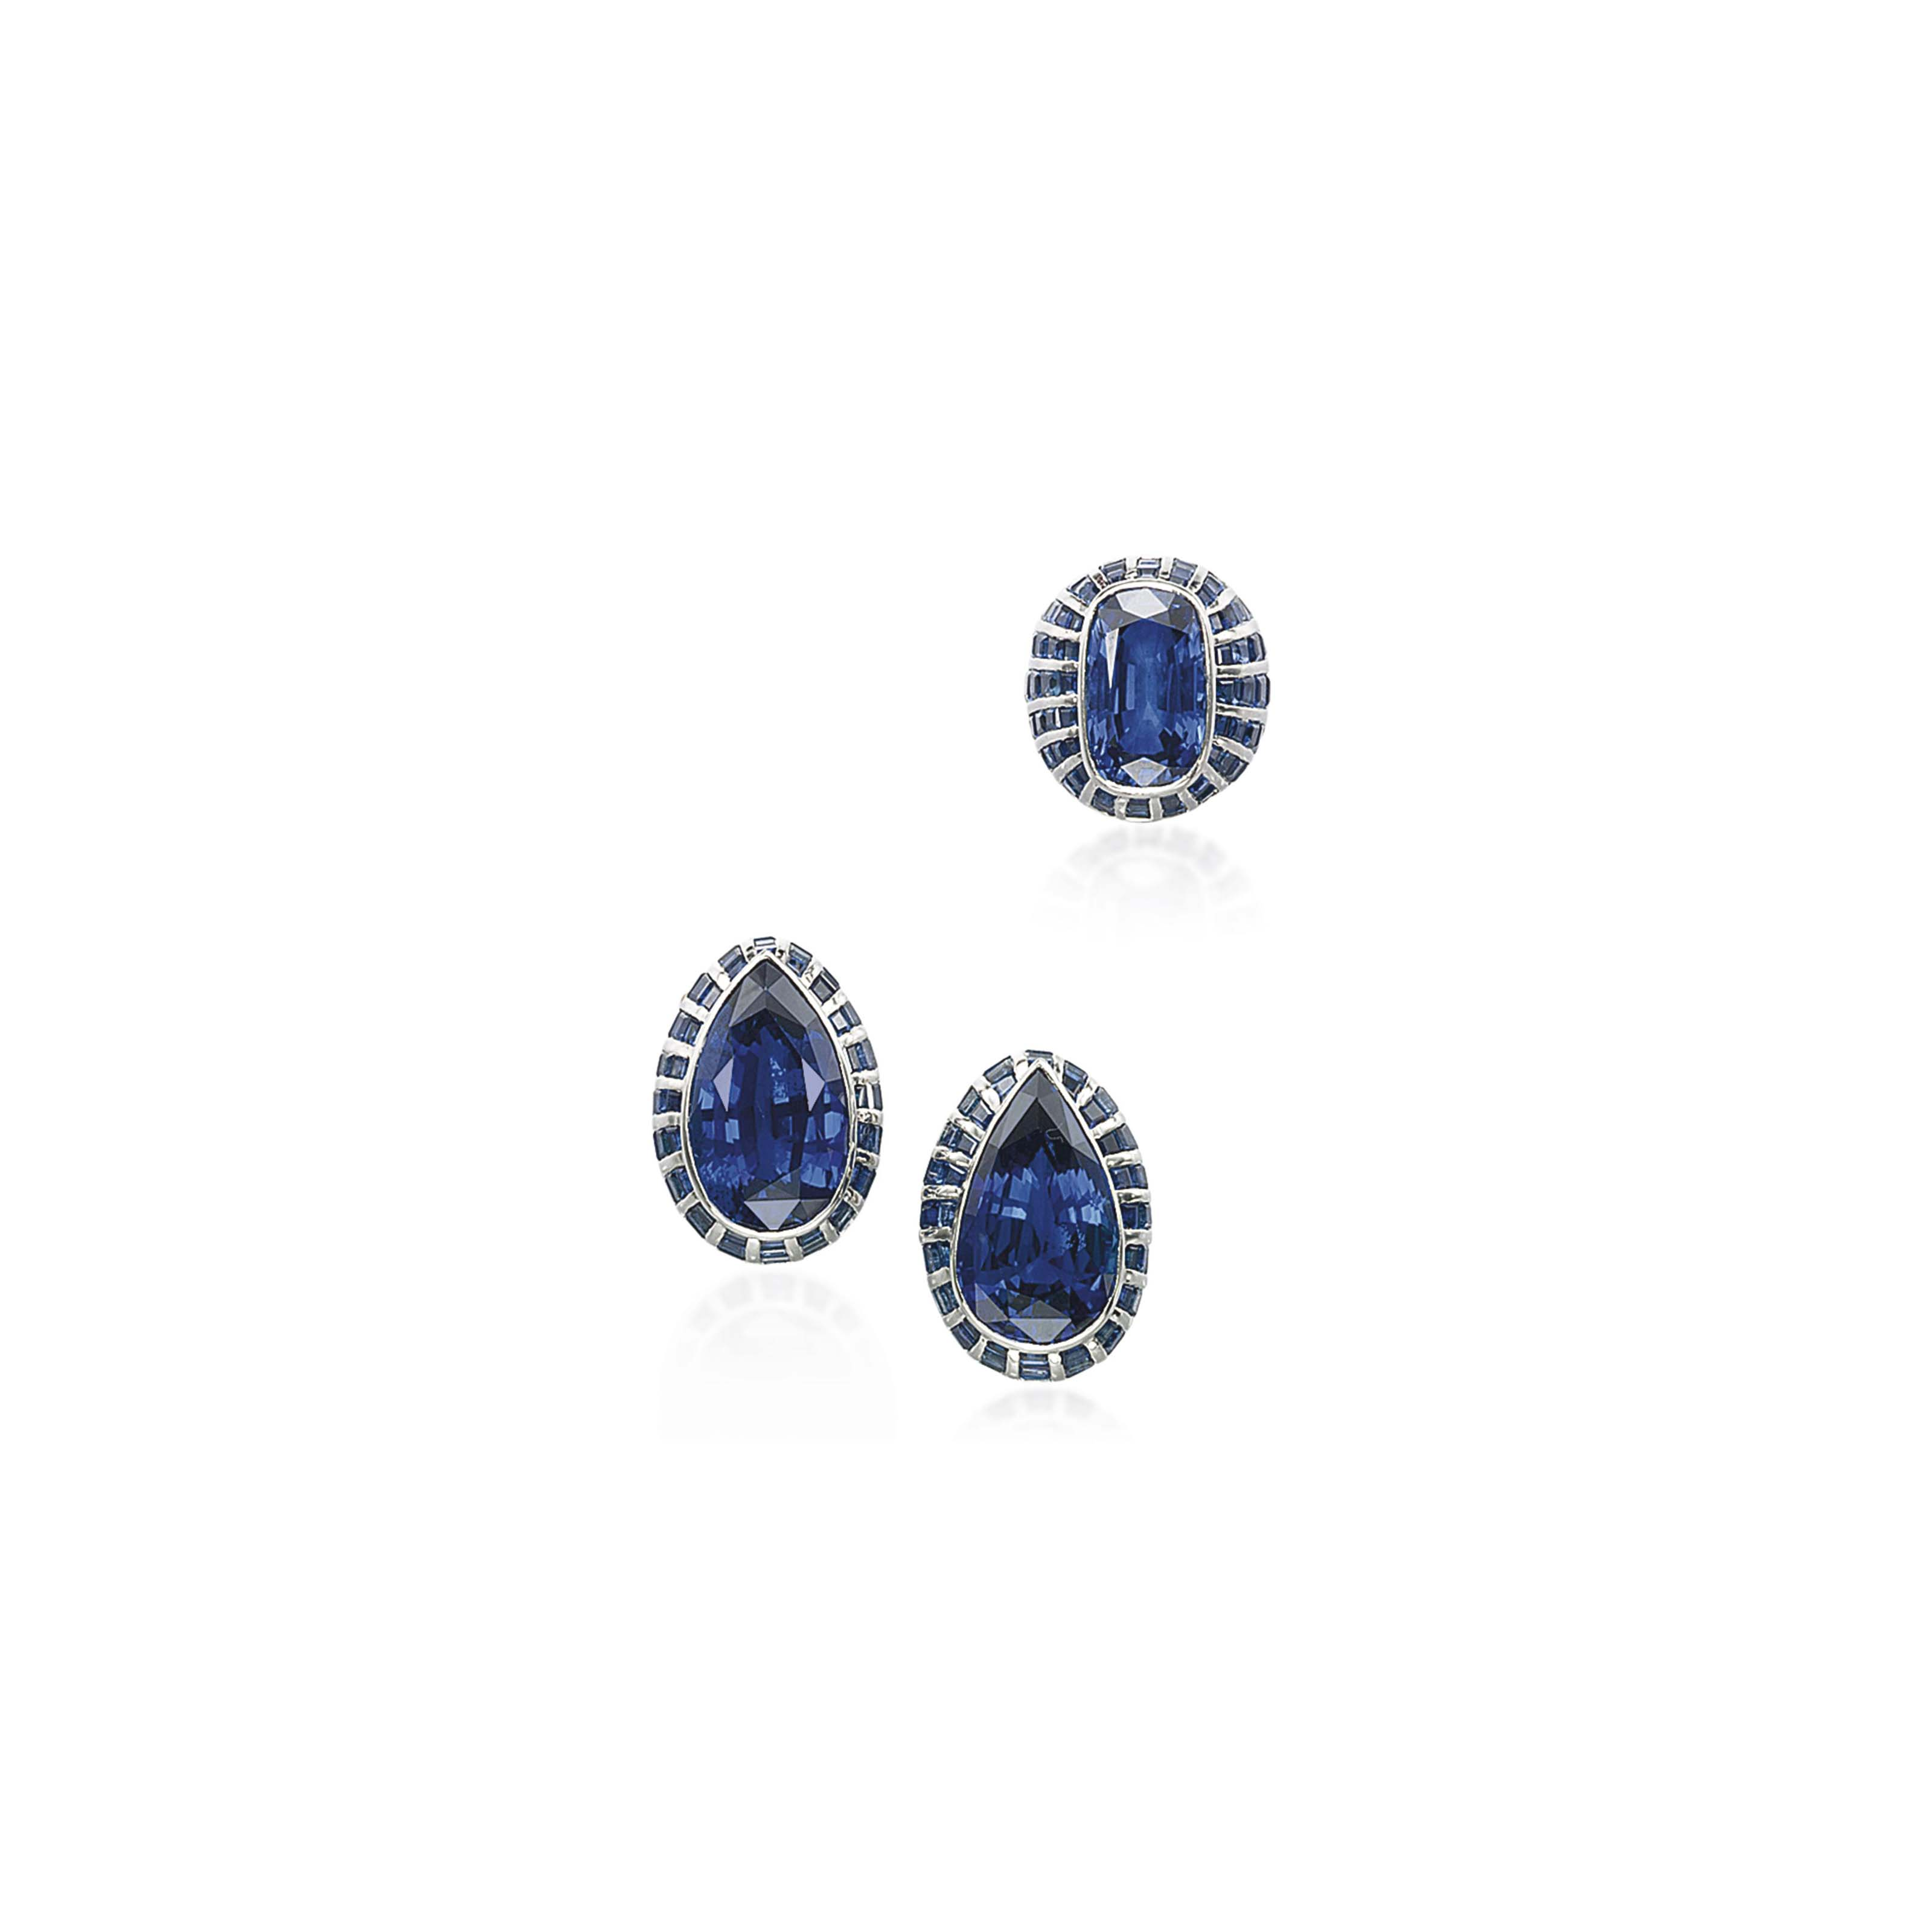 A SET OF SAPPHIRE JEWELLERY, BY FRED LEIGHTON